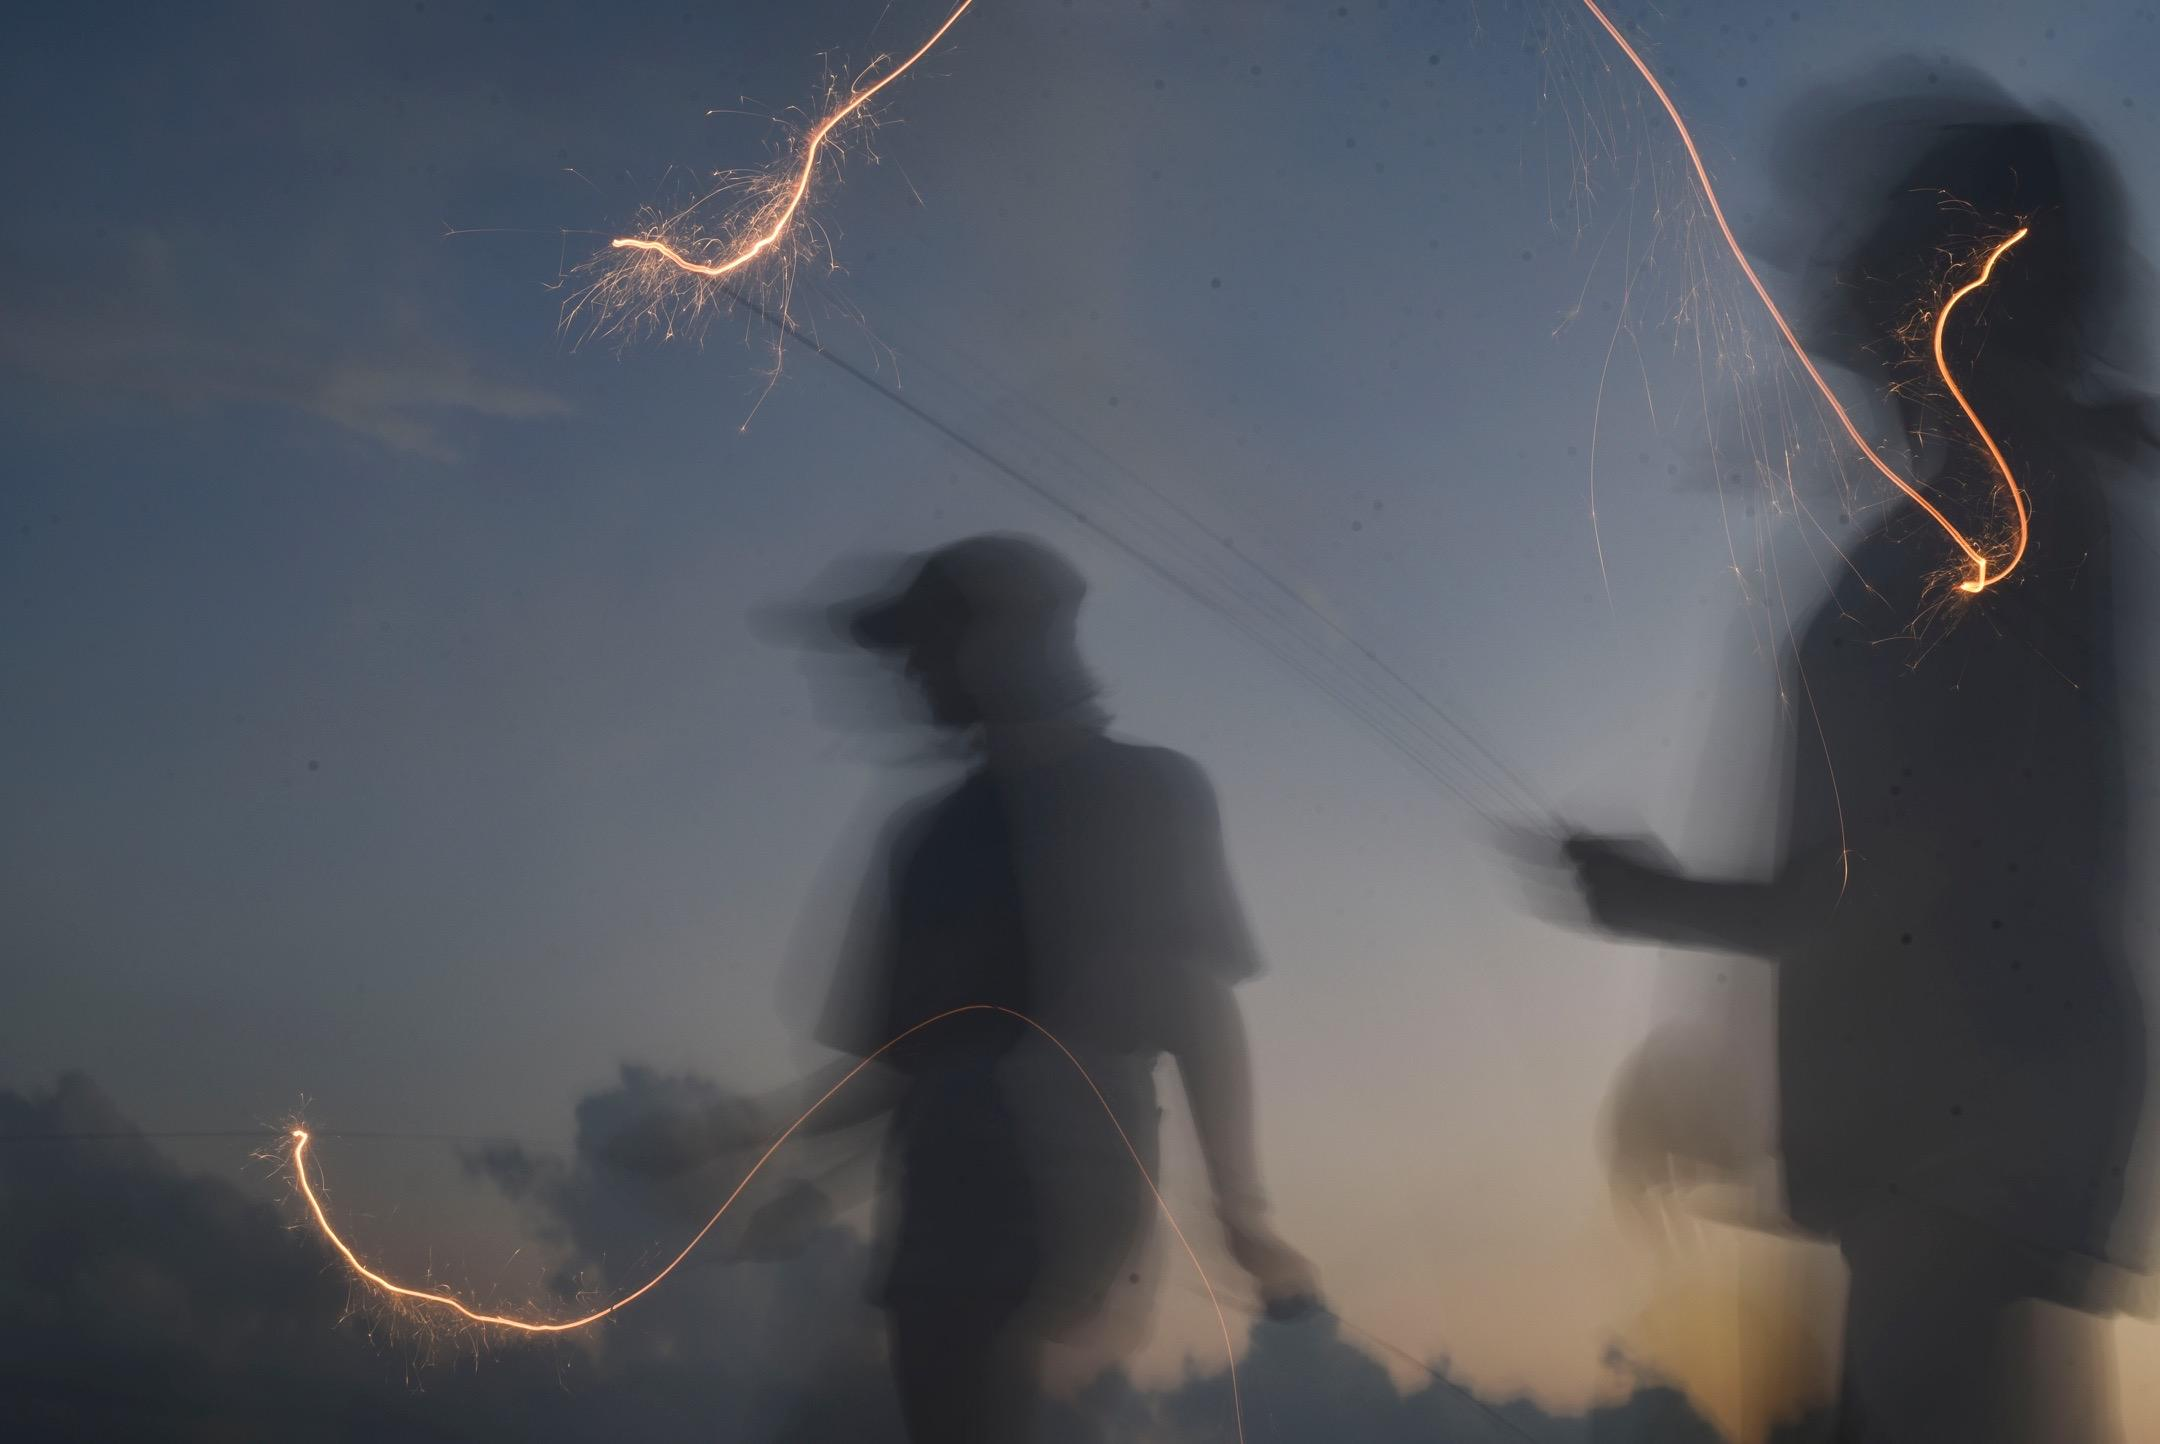 Camille McManus and Christina Long wave sparklers July 4, 2020 in Rich Hill, Mo.